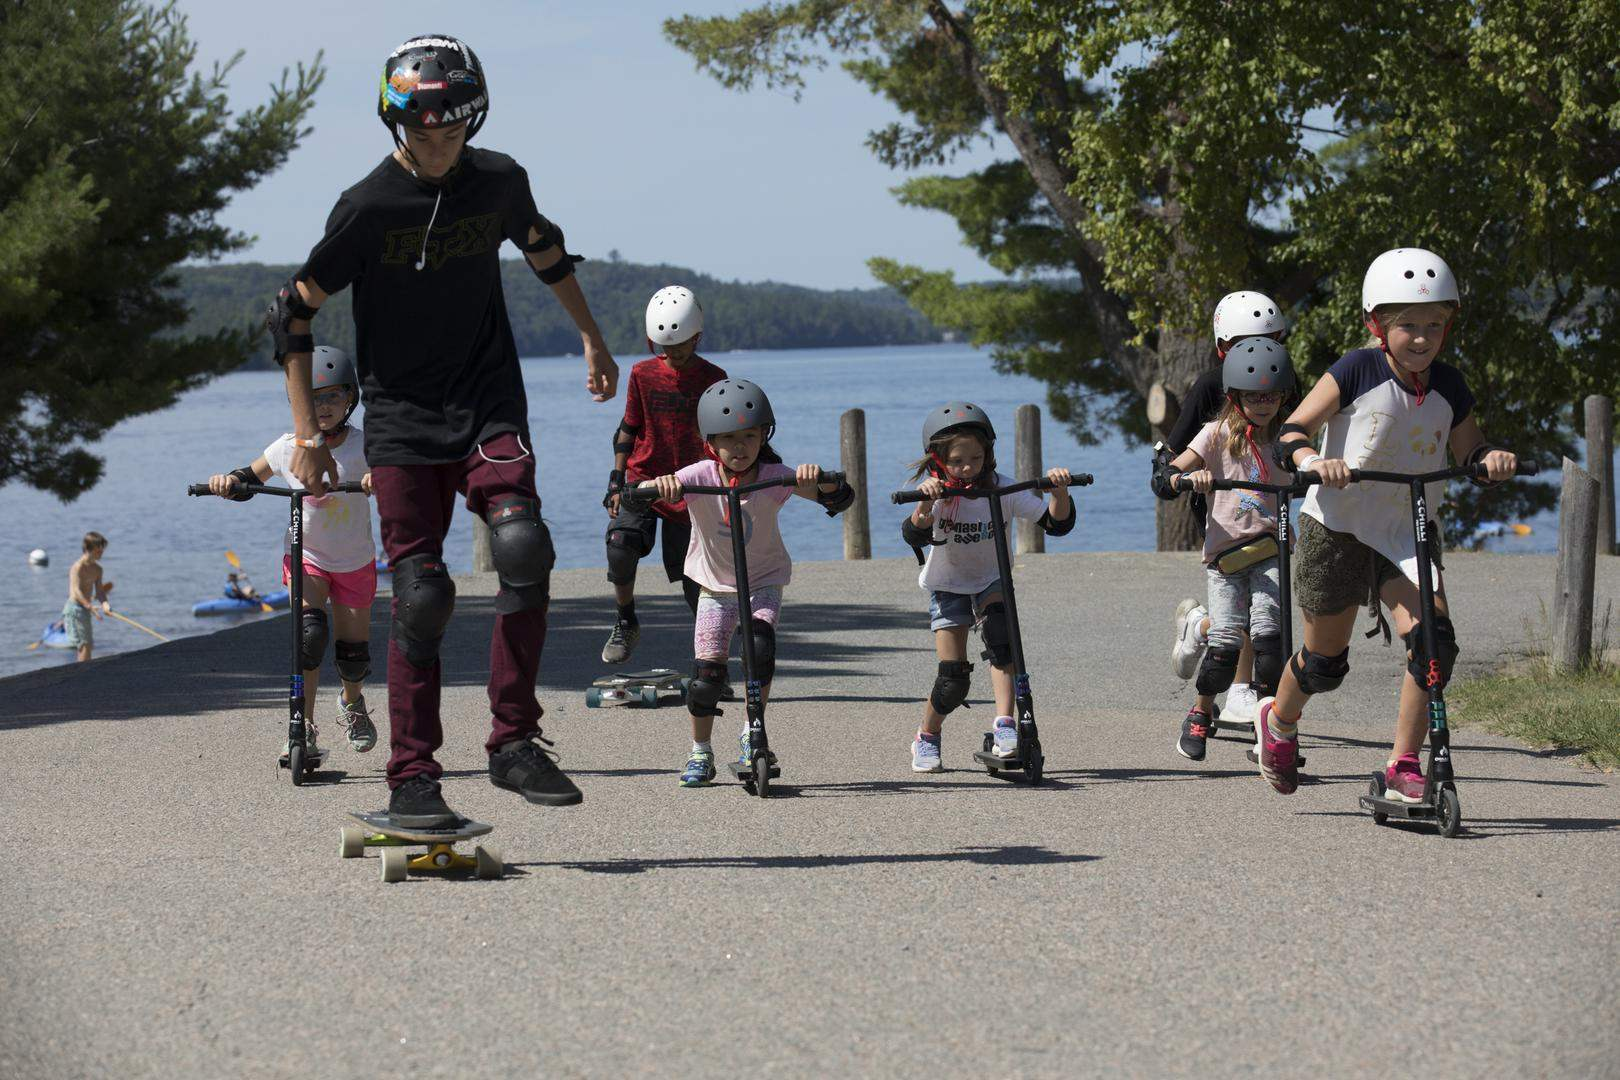 young boys and girls use scooters in front of a lake